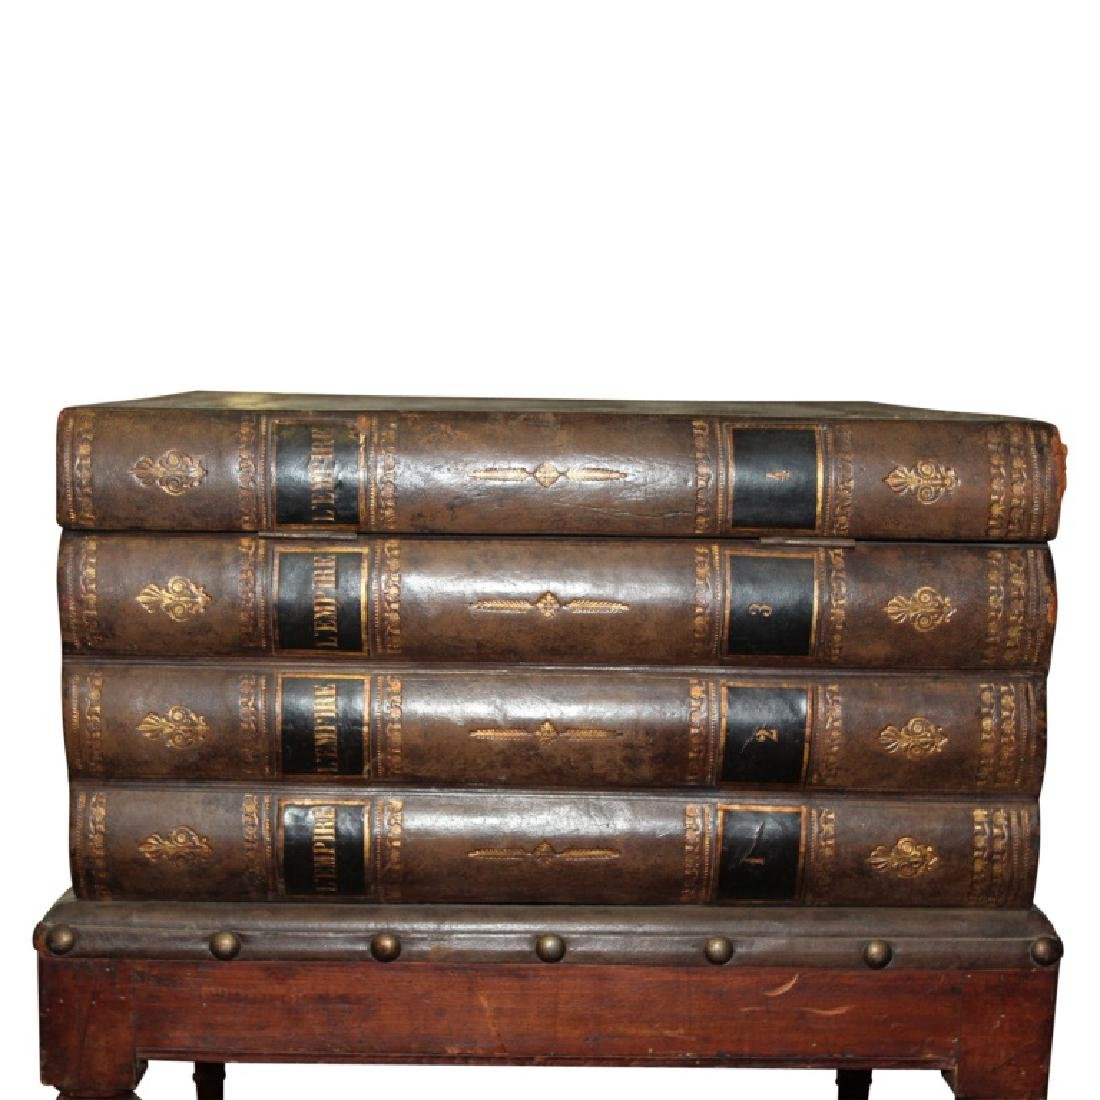 Wood Carved Book Stack End Table - 4